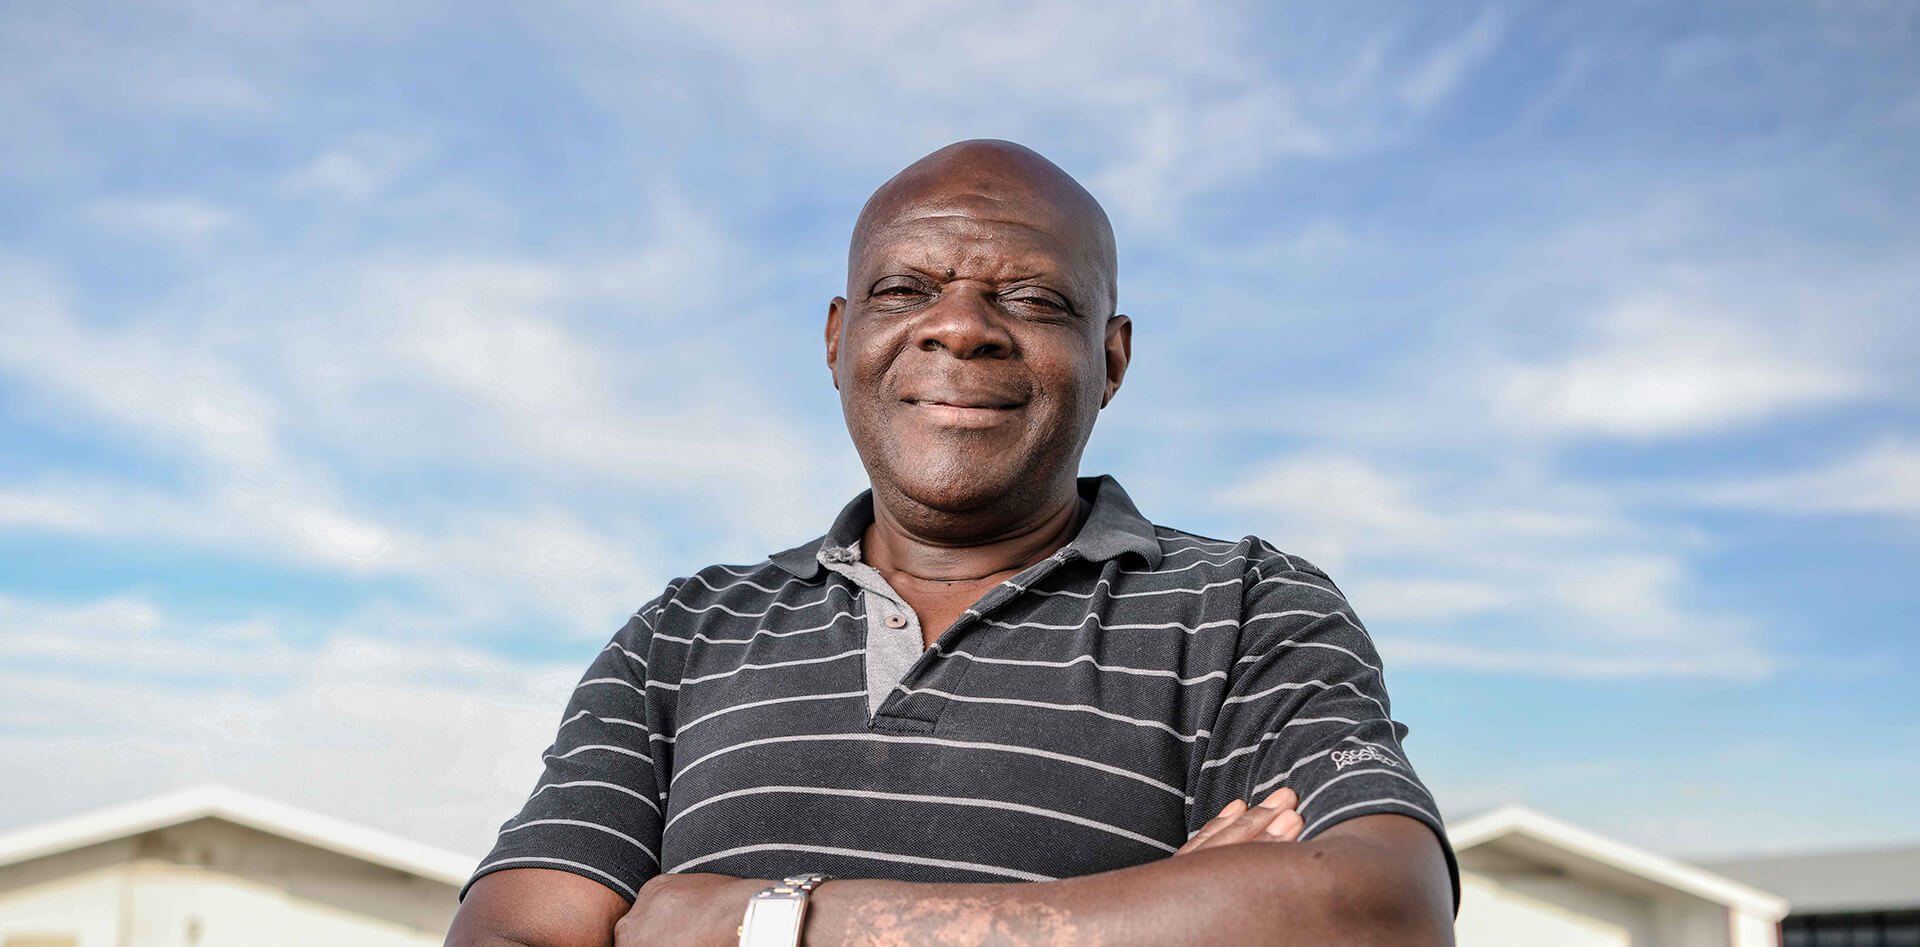 Know Our Food - Norman Rametse: Chicken Farm Owner